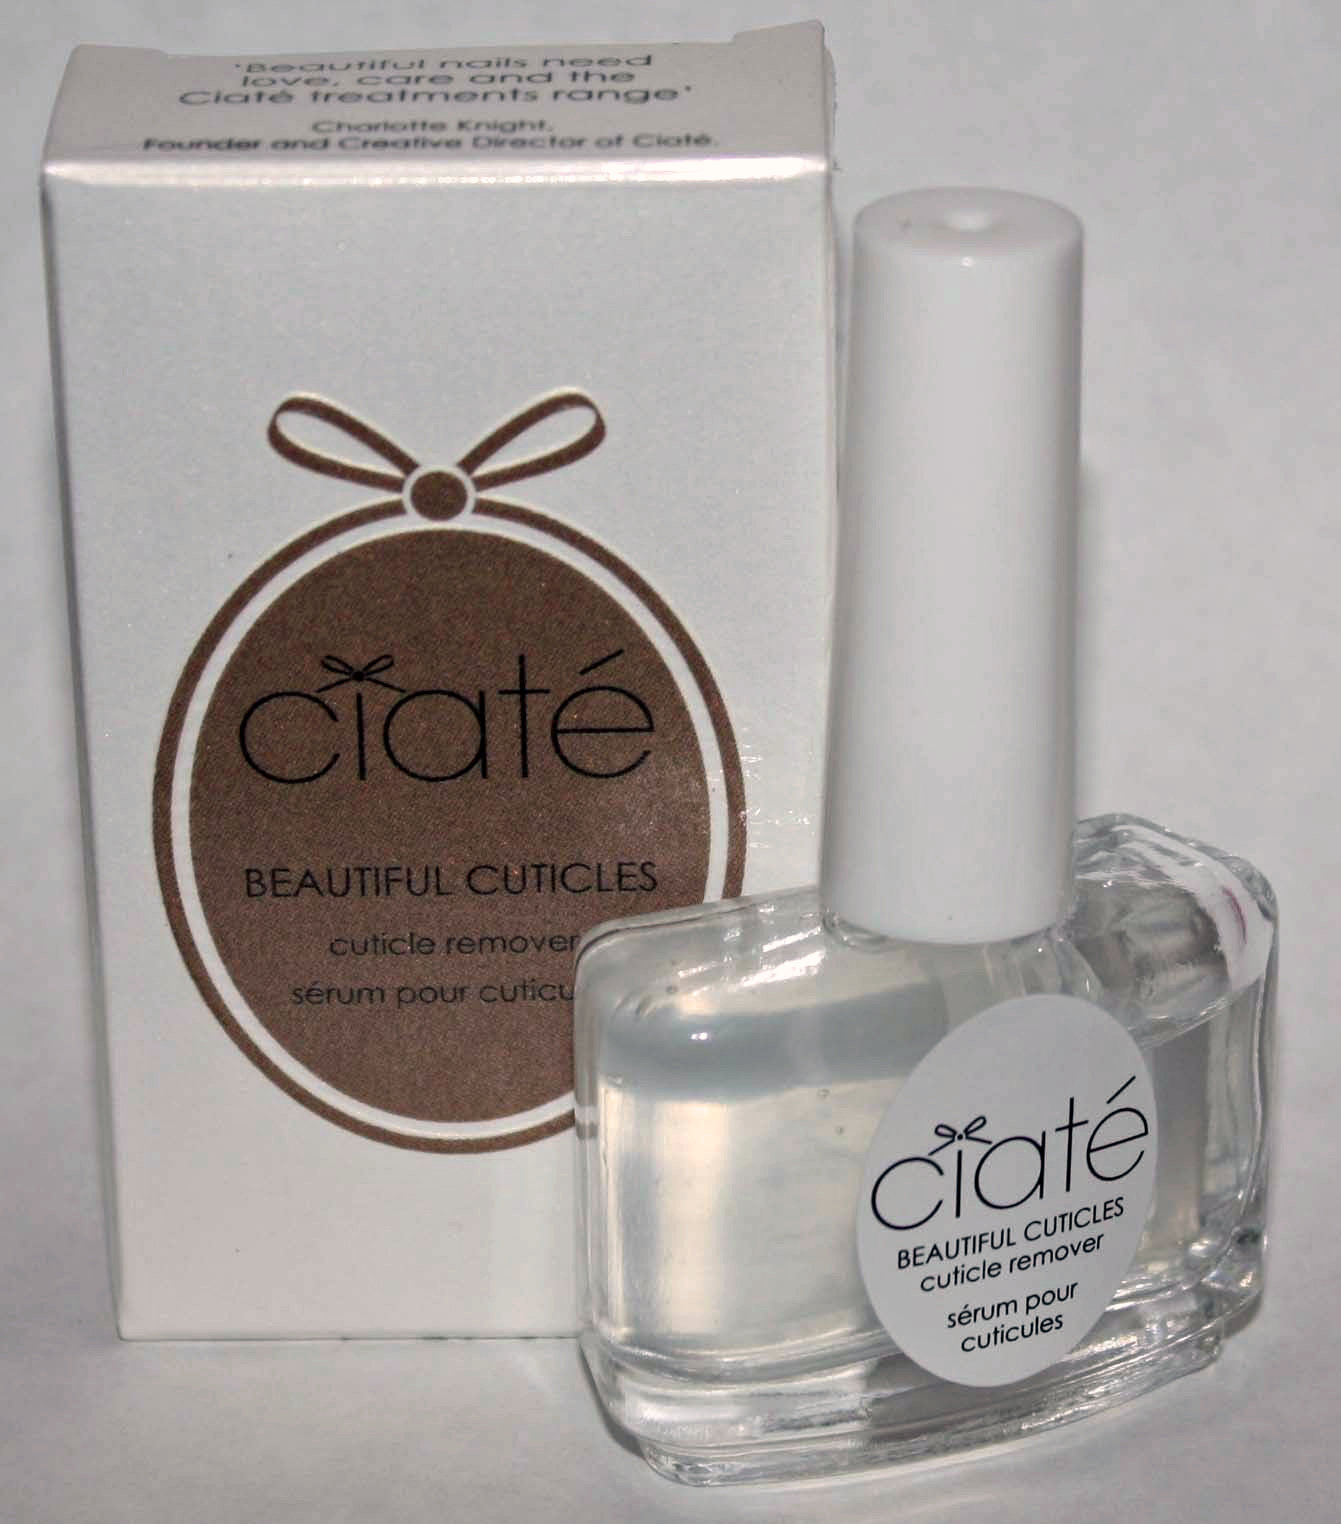 Ciate Nail Beautiful Cuticles Cuticle Remover 0.45 oz 14433